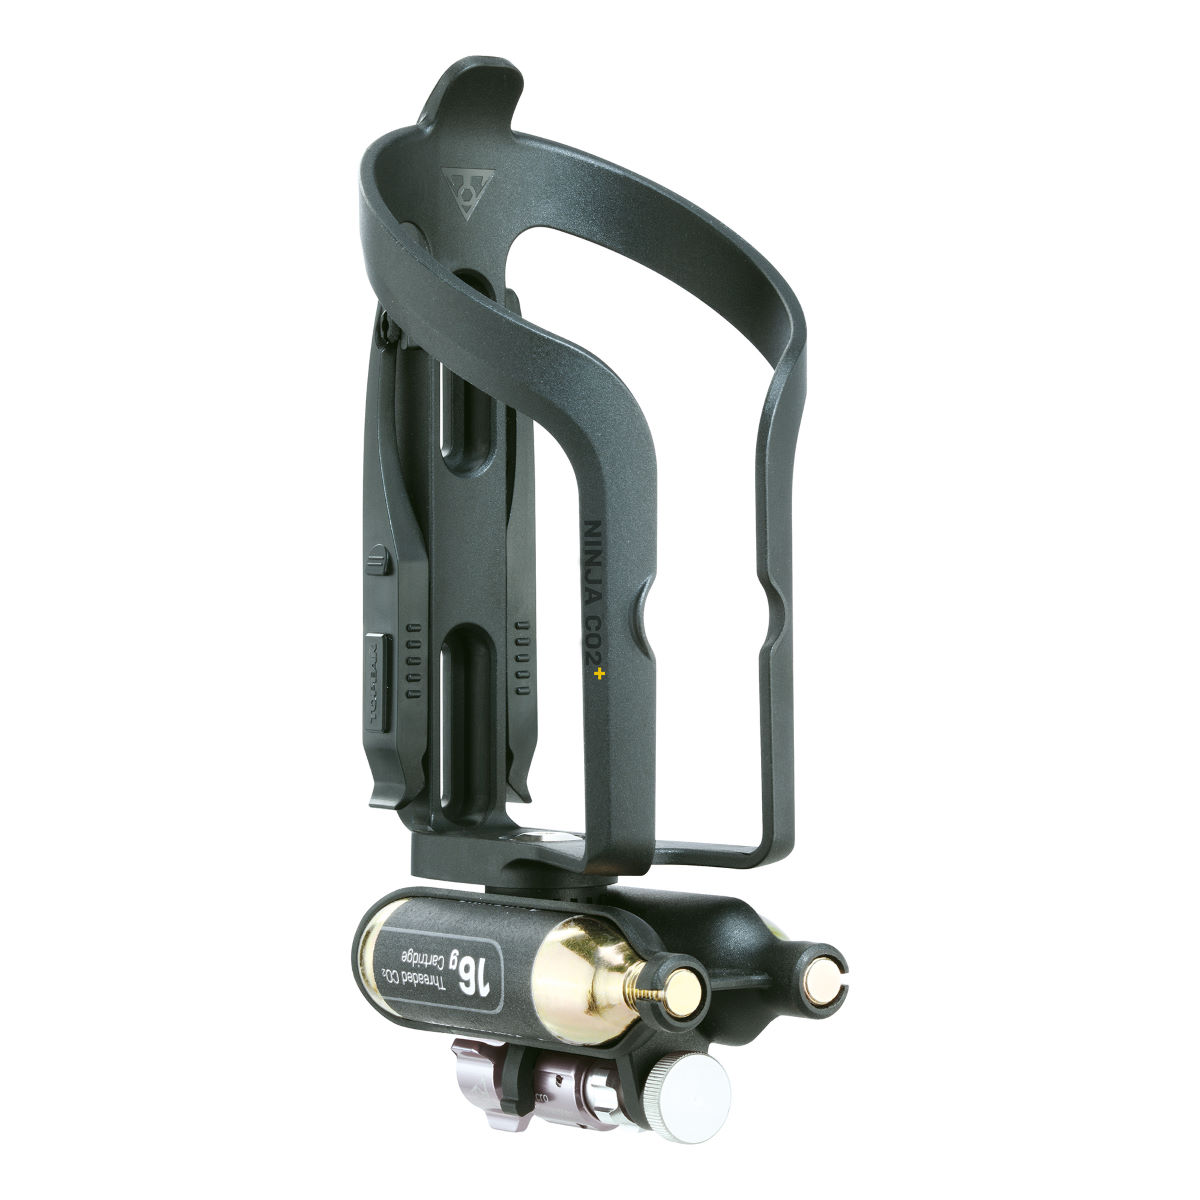 Topeak Topeak Ninja CO2 Plus Bottle Cage   Bottle Cages